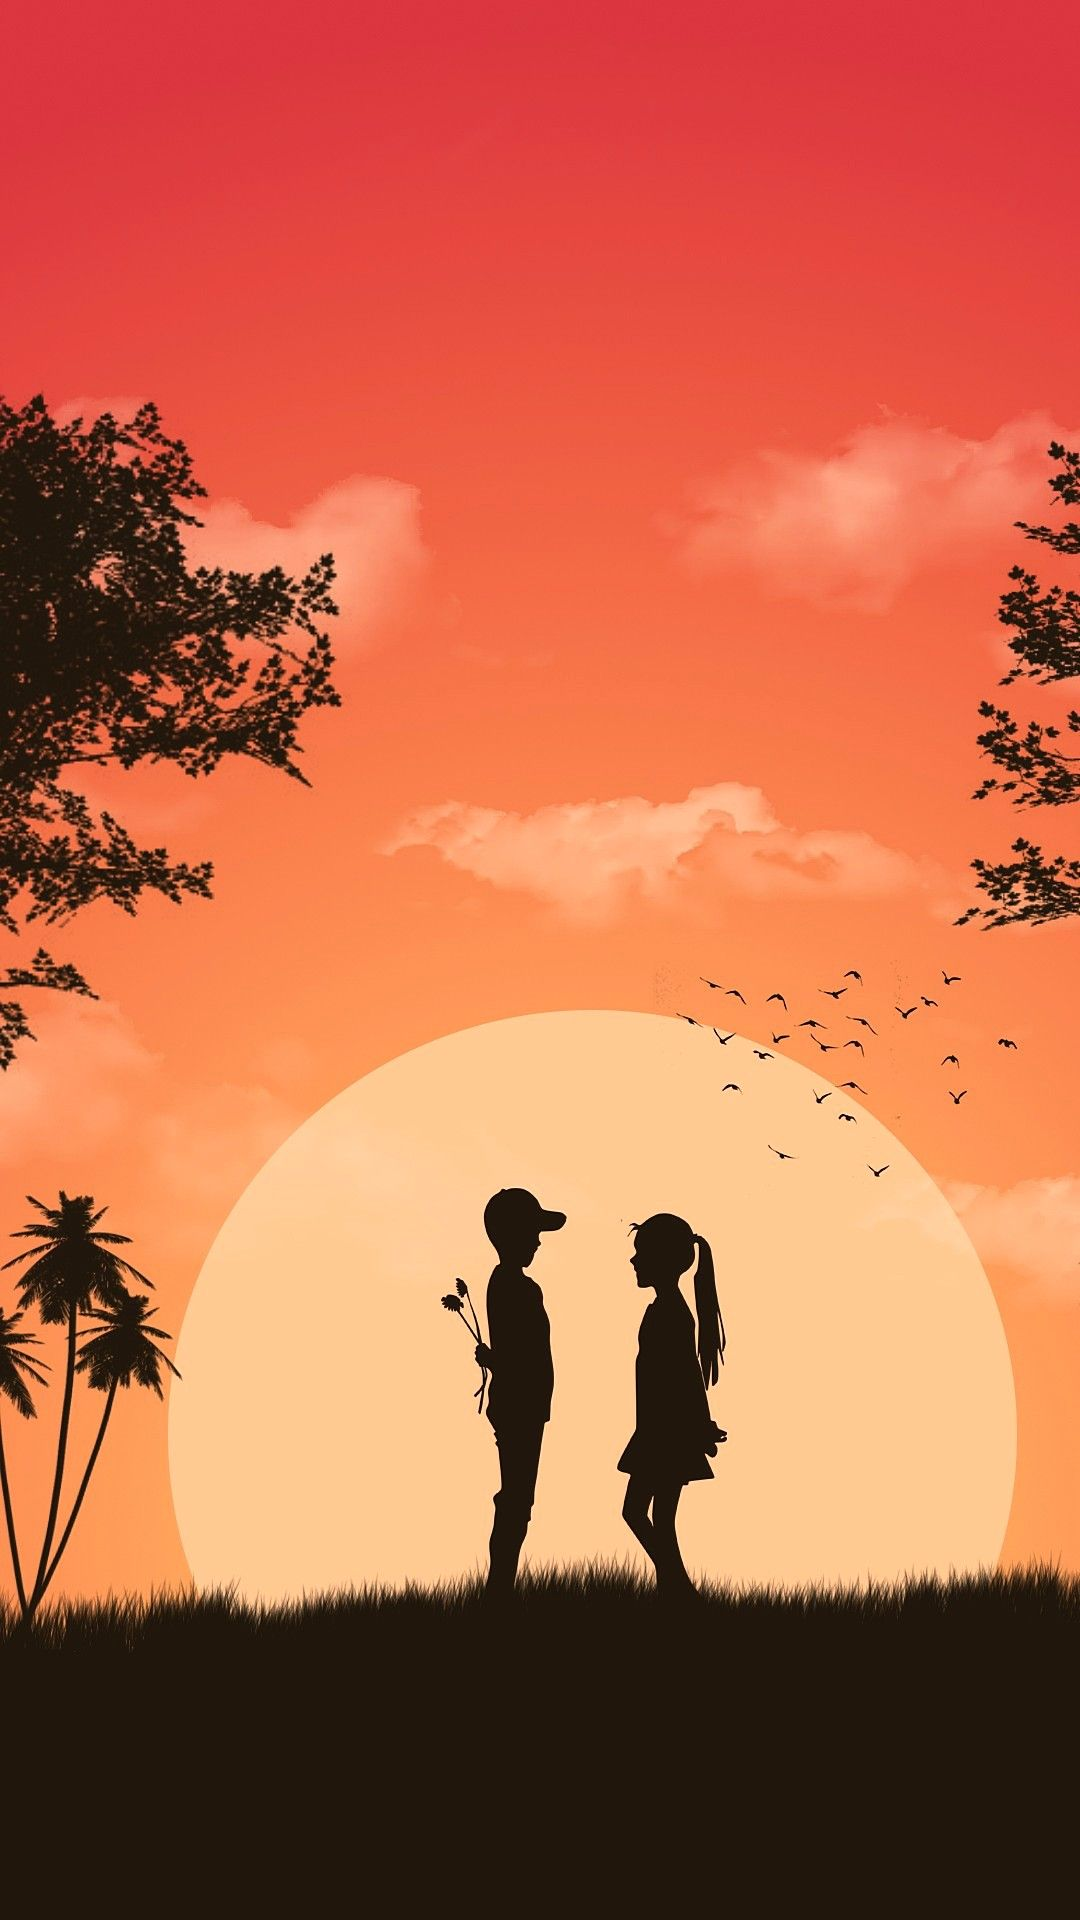 Boy And Girl Love Hd Wallpapers 1080x1920 In 2021 Full Hd Love Wallpaper Wallpaper 1080x1920 Love Wallpaper Download